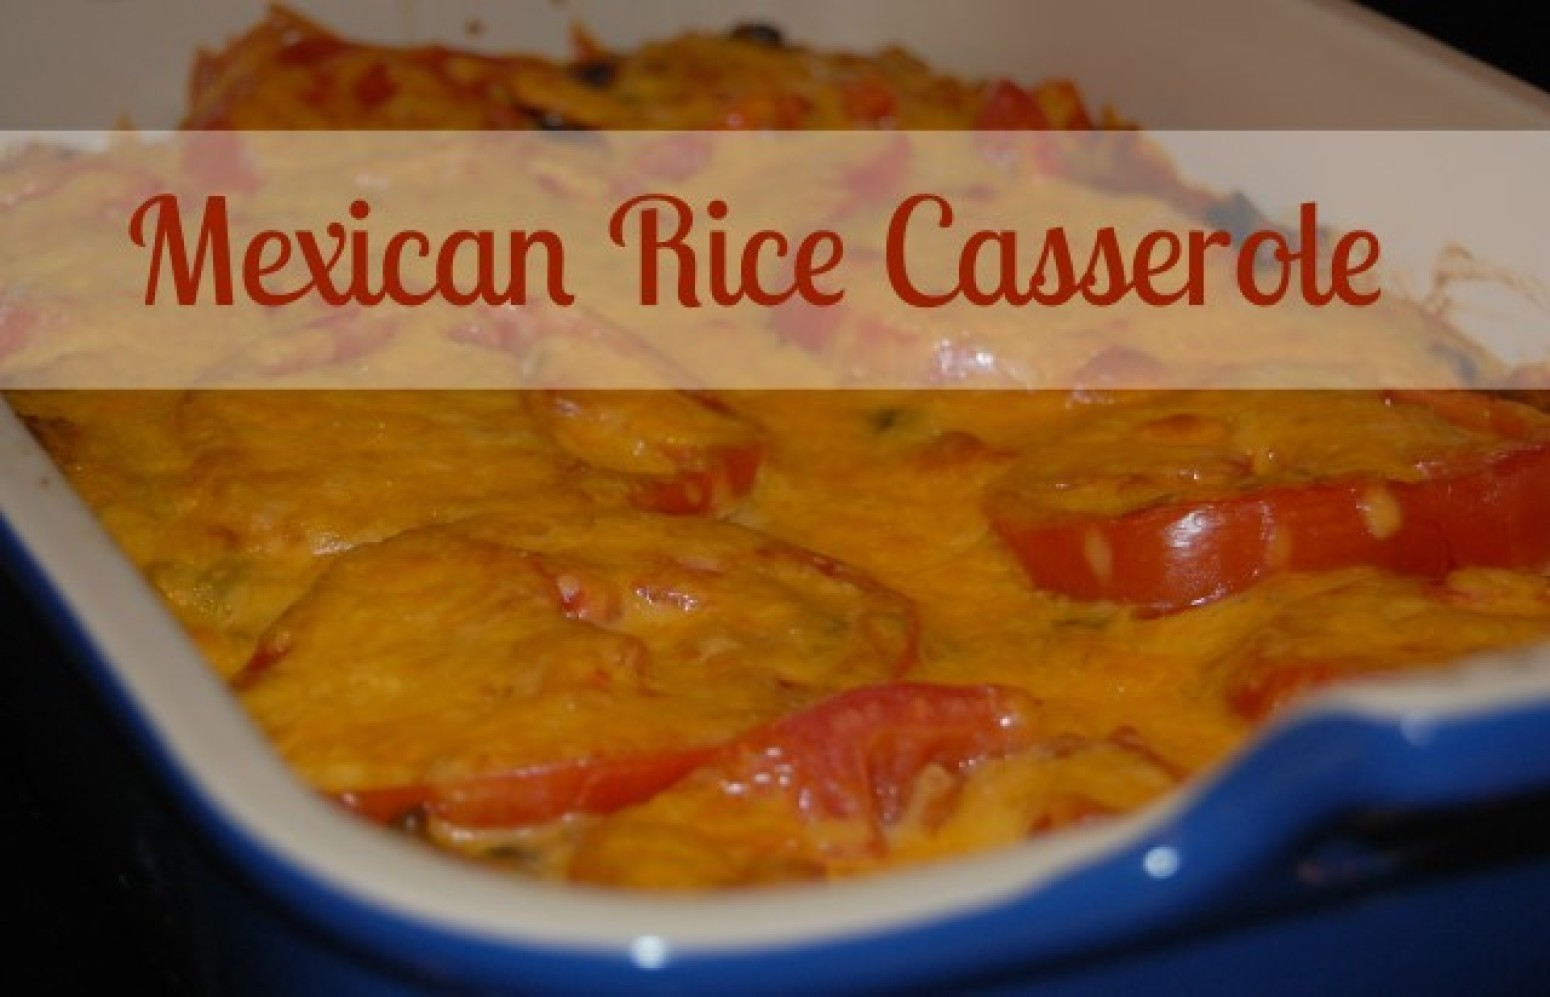 Mexican Rice Casserole Recipe 6 | Just A Pinch Recipes